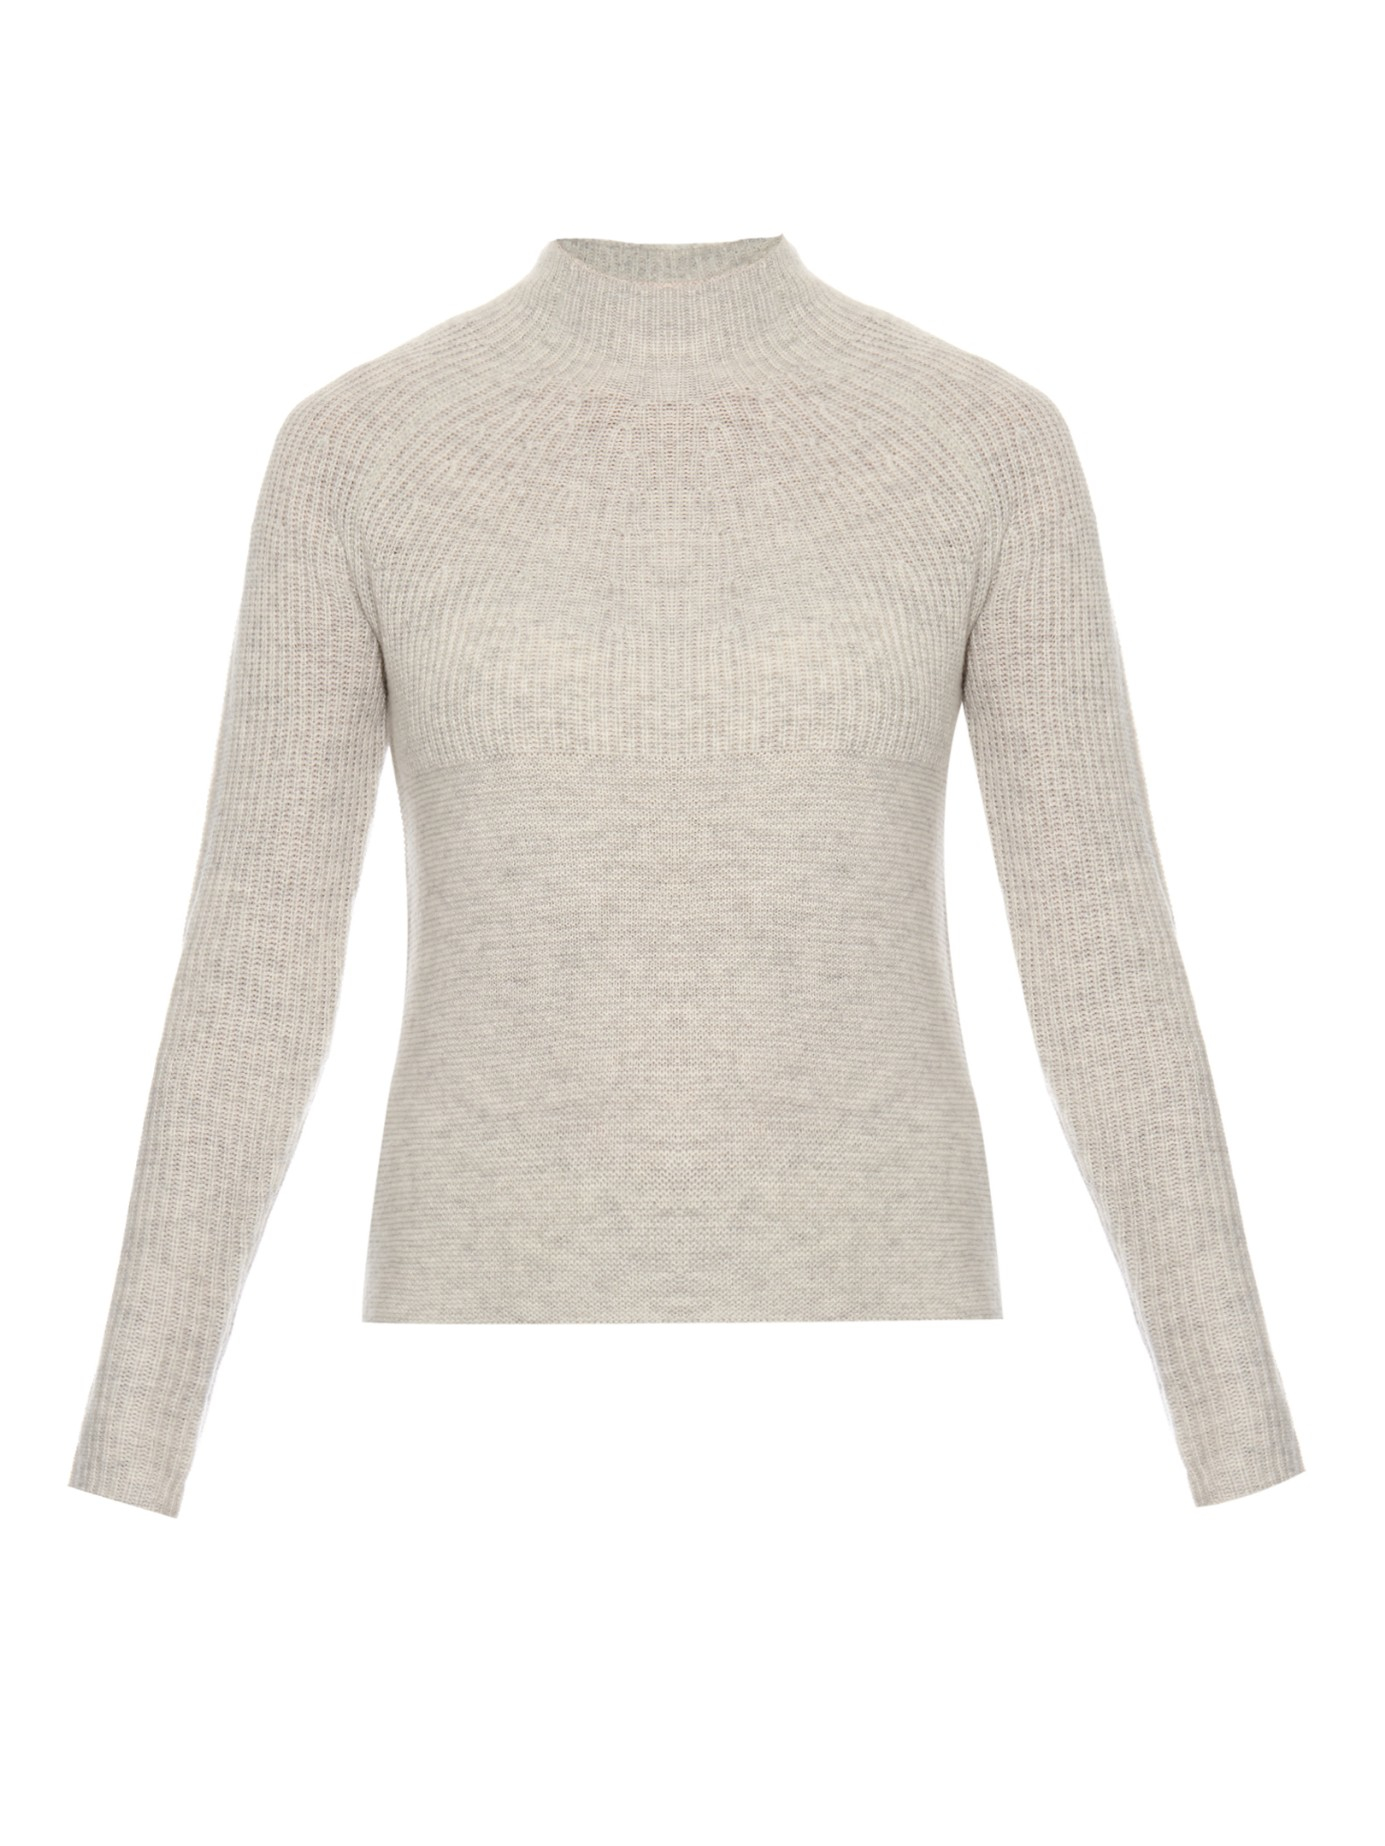 Vince Mock-neck Cashmere Sweater in Gray | Lyst